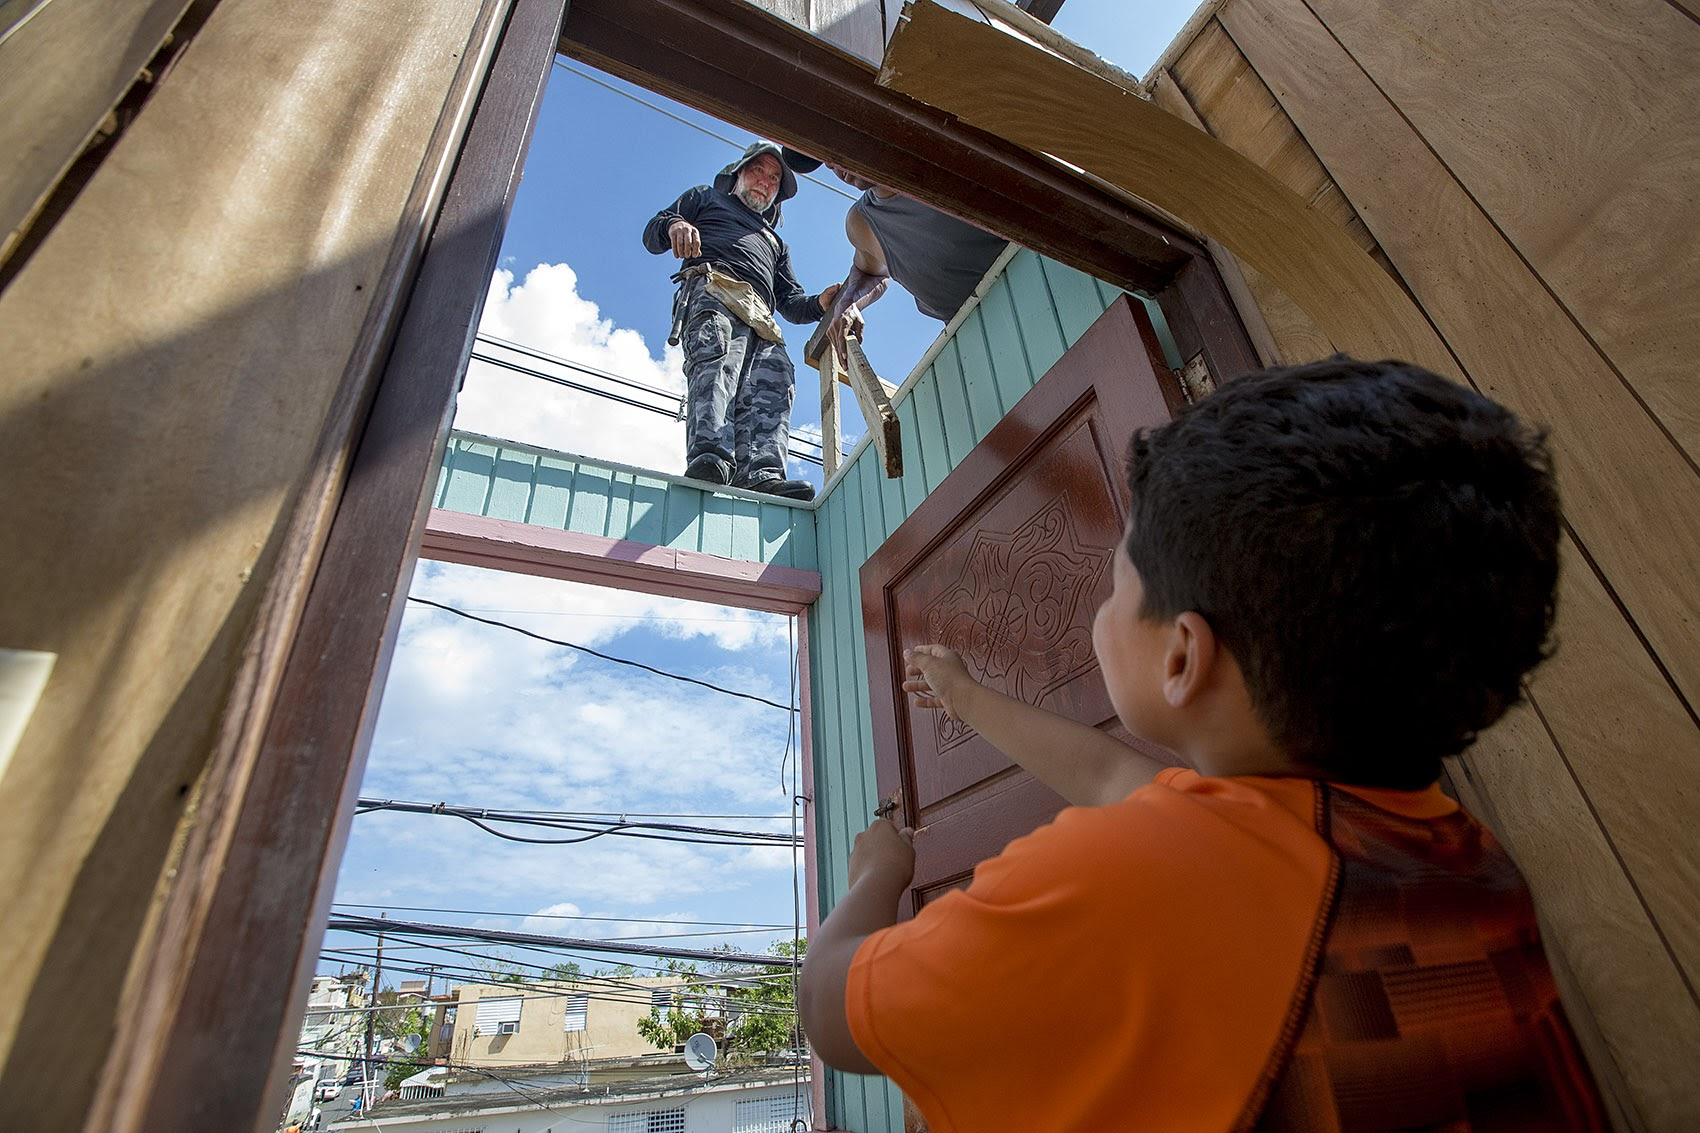 Jose Lopez hands a small board to Anthony Geigel and Israel Garcia to repair their roof in Barrio Obrero Santurce. (Jesse Costa/WBUR)